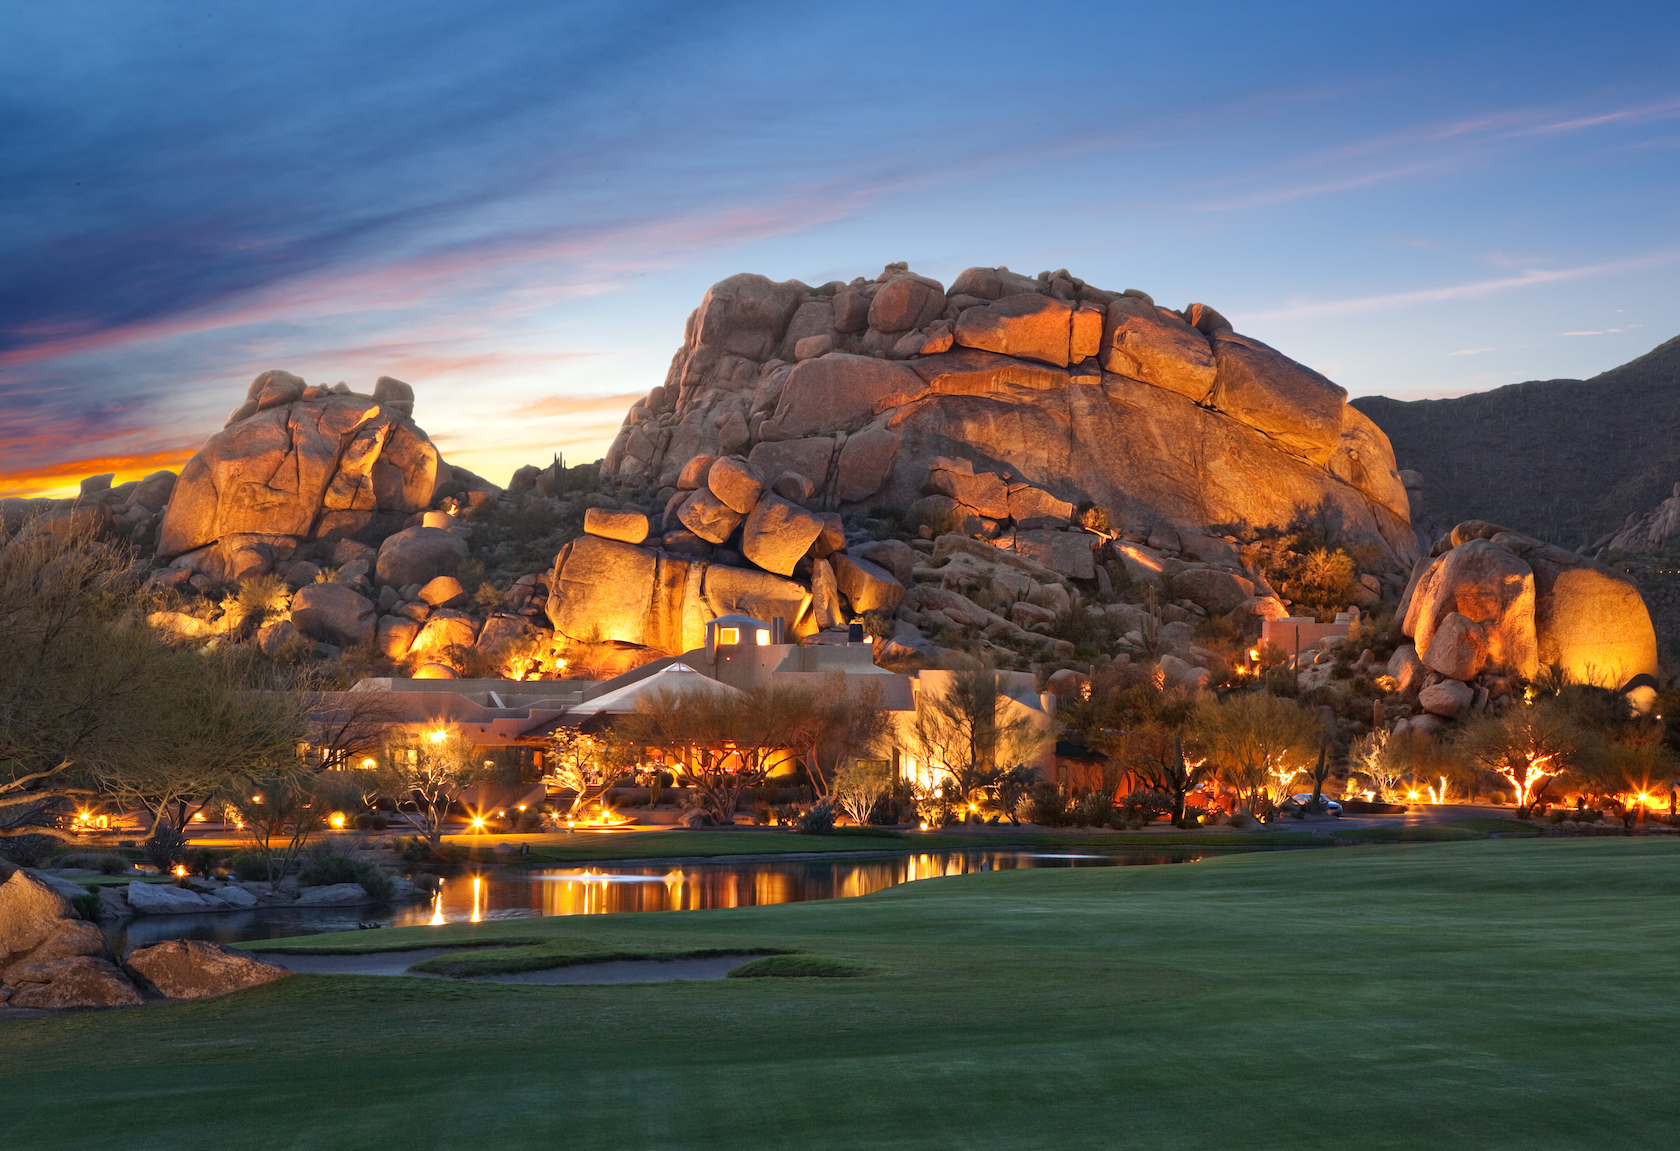 stackliving-most-beautiful-hotels-02-The-Boulder-Arizona-01